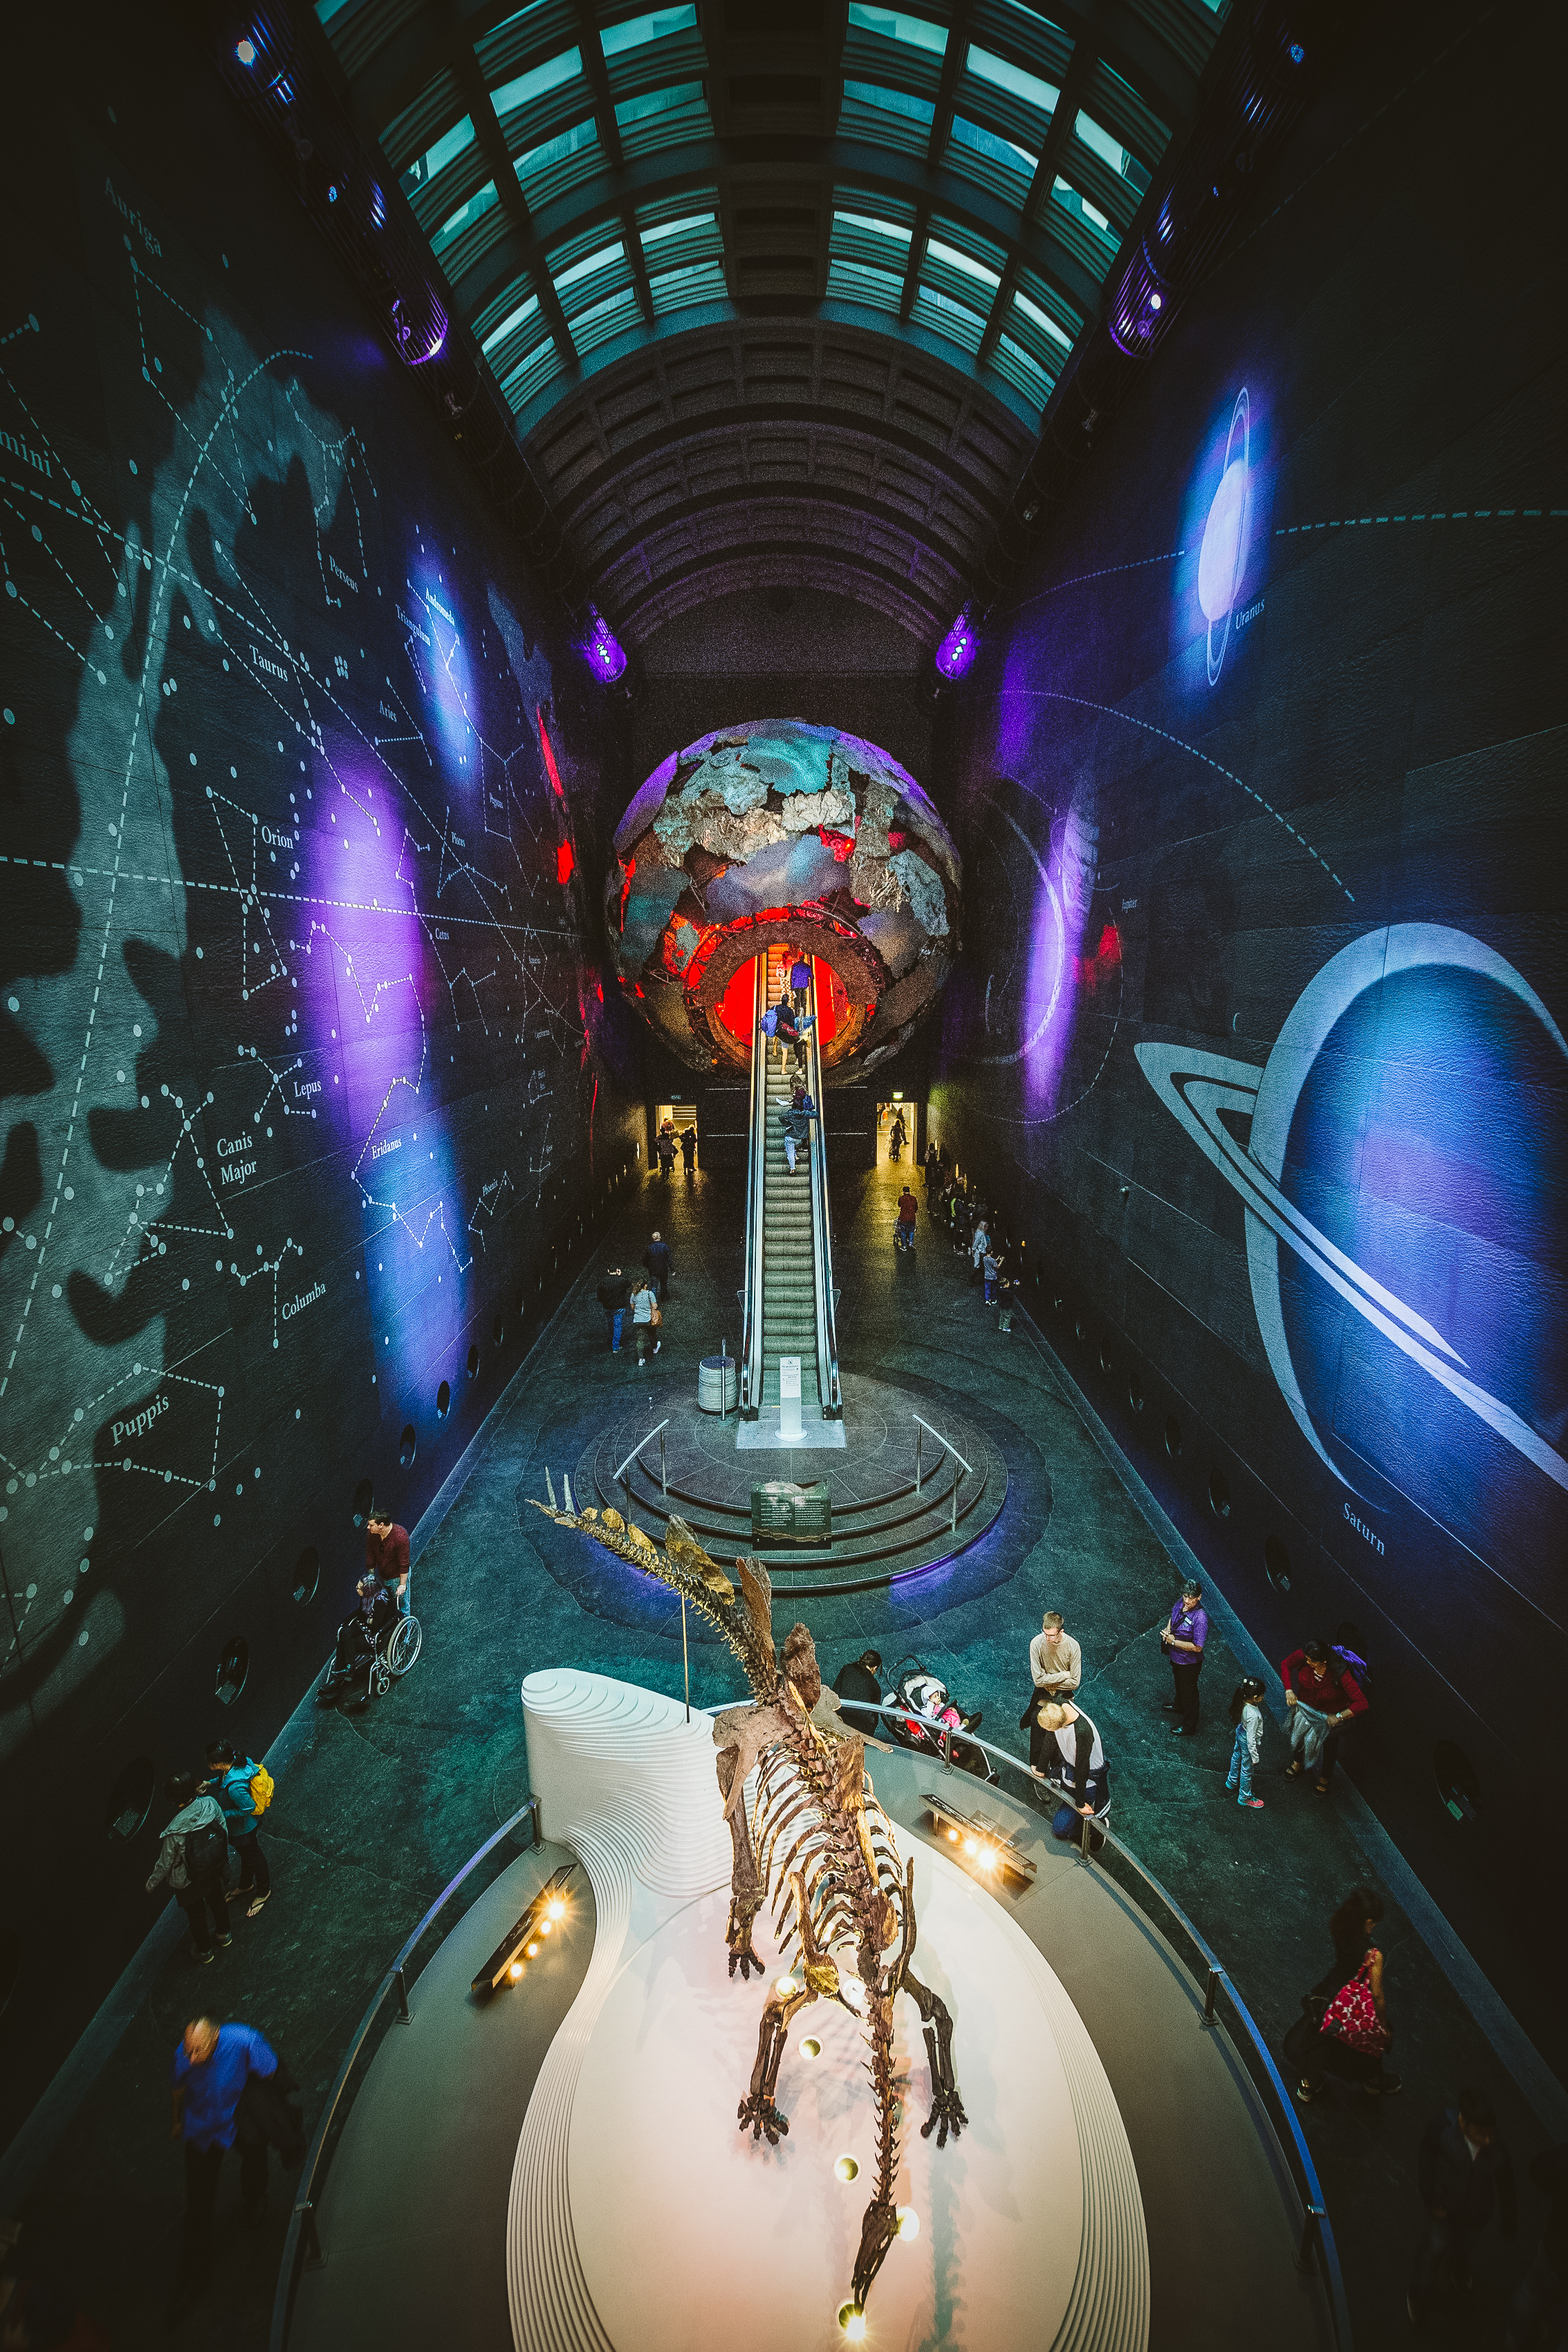 Again, a view of the Natural History Museum atrium, from dinosaurs to a journey to the centre of the earth.